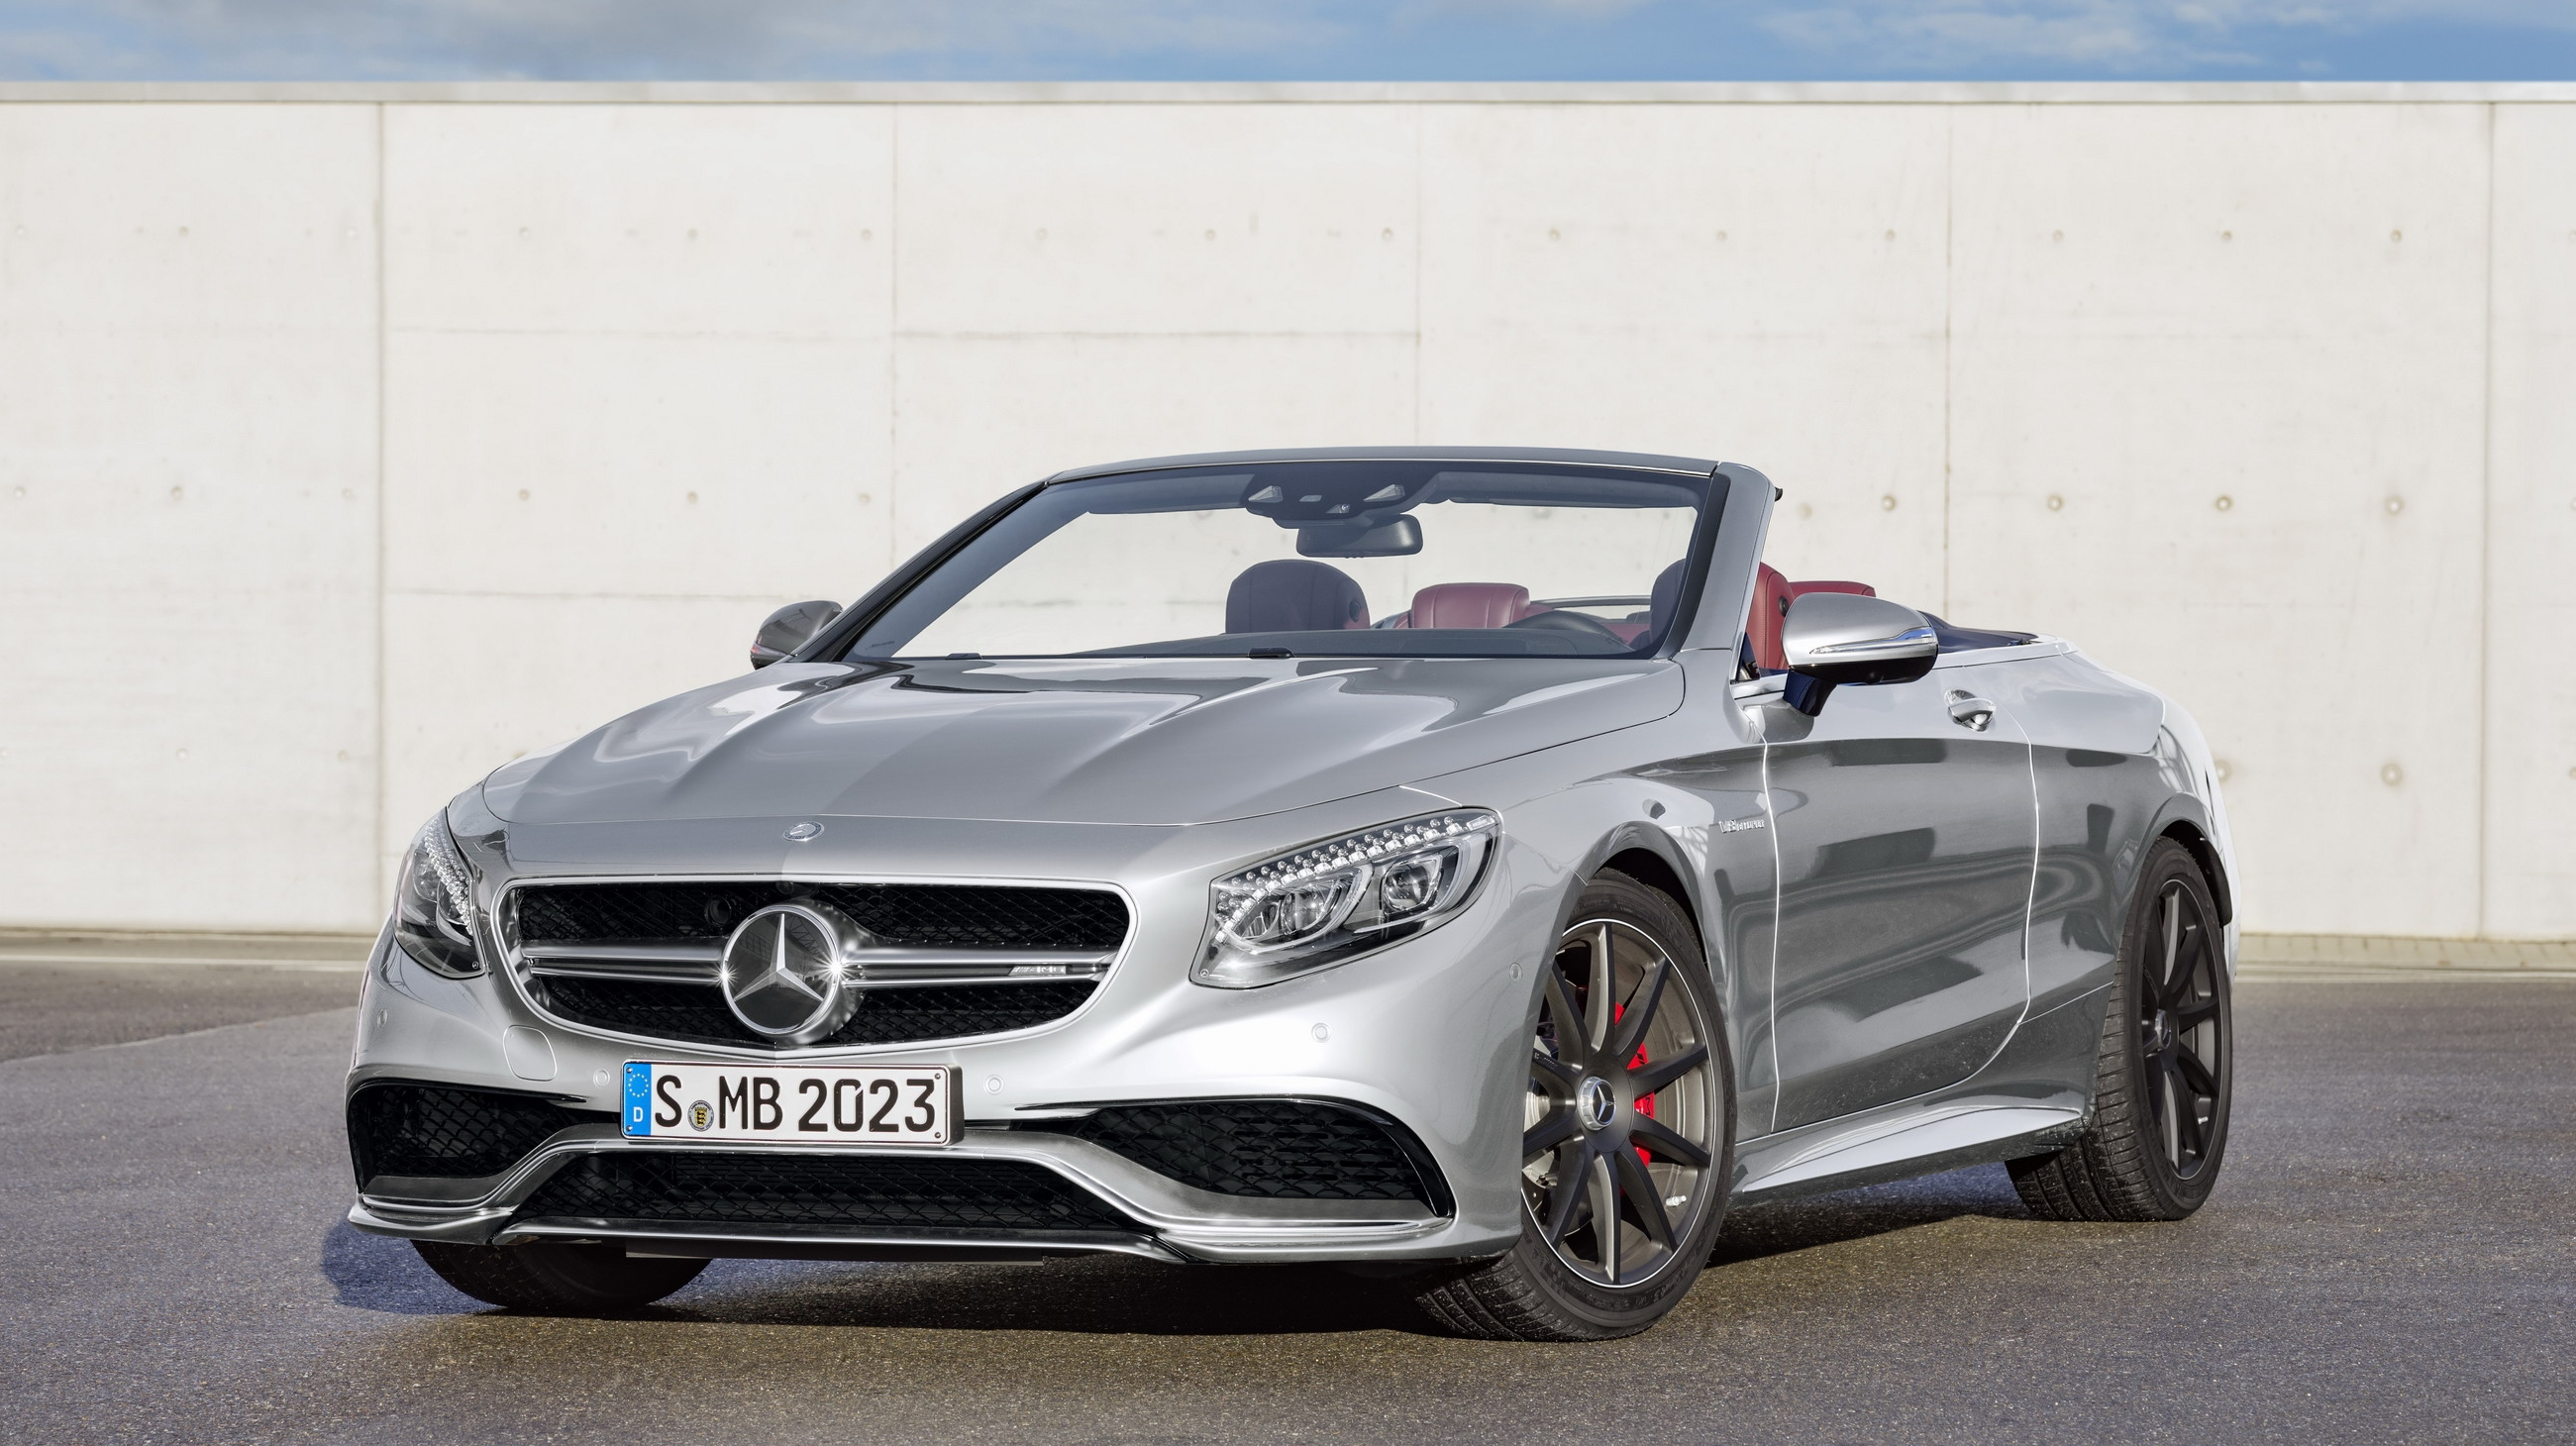 2017 Mercedes-AMG S 63 4MATIC Cabriolet \